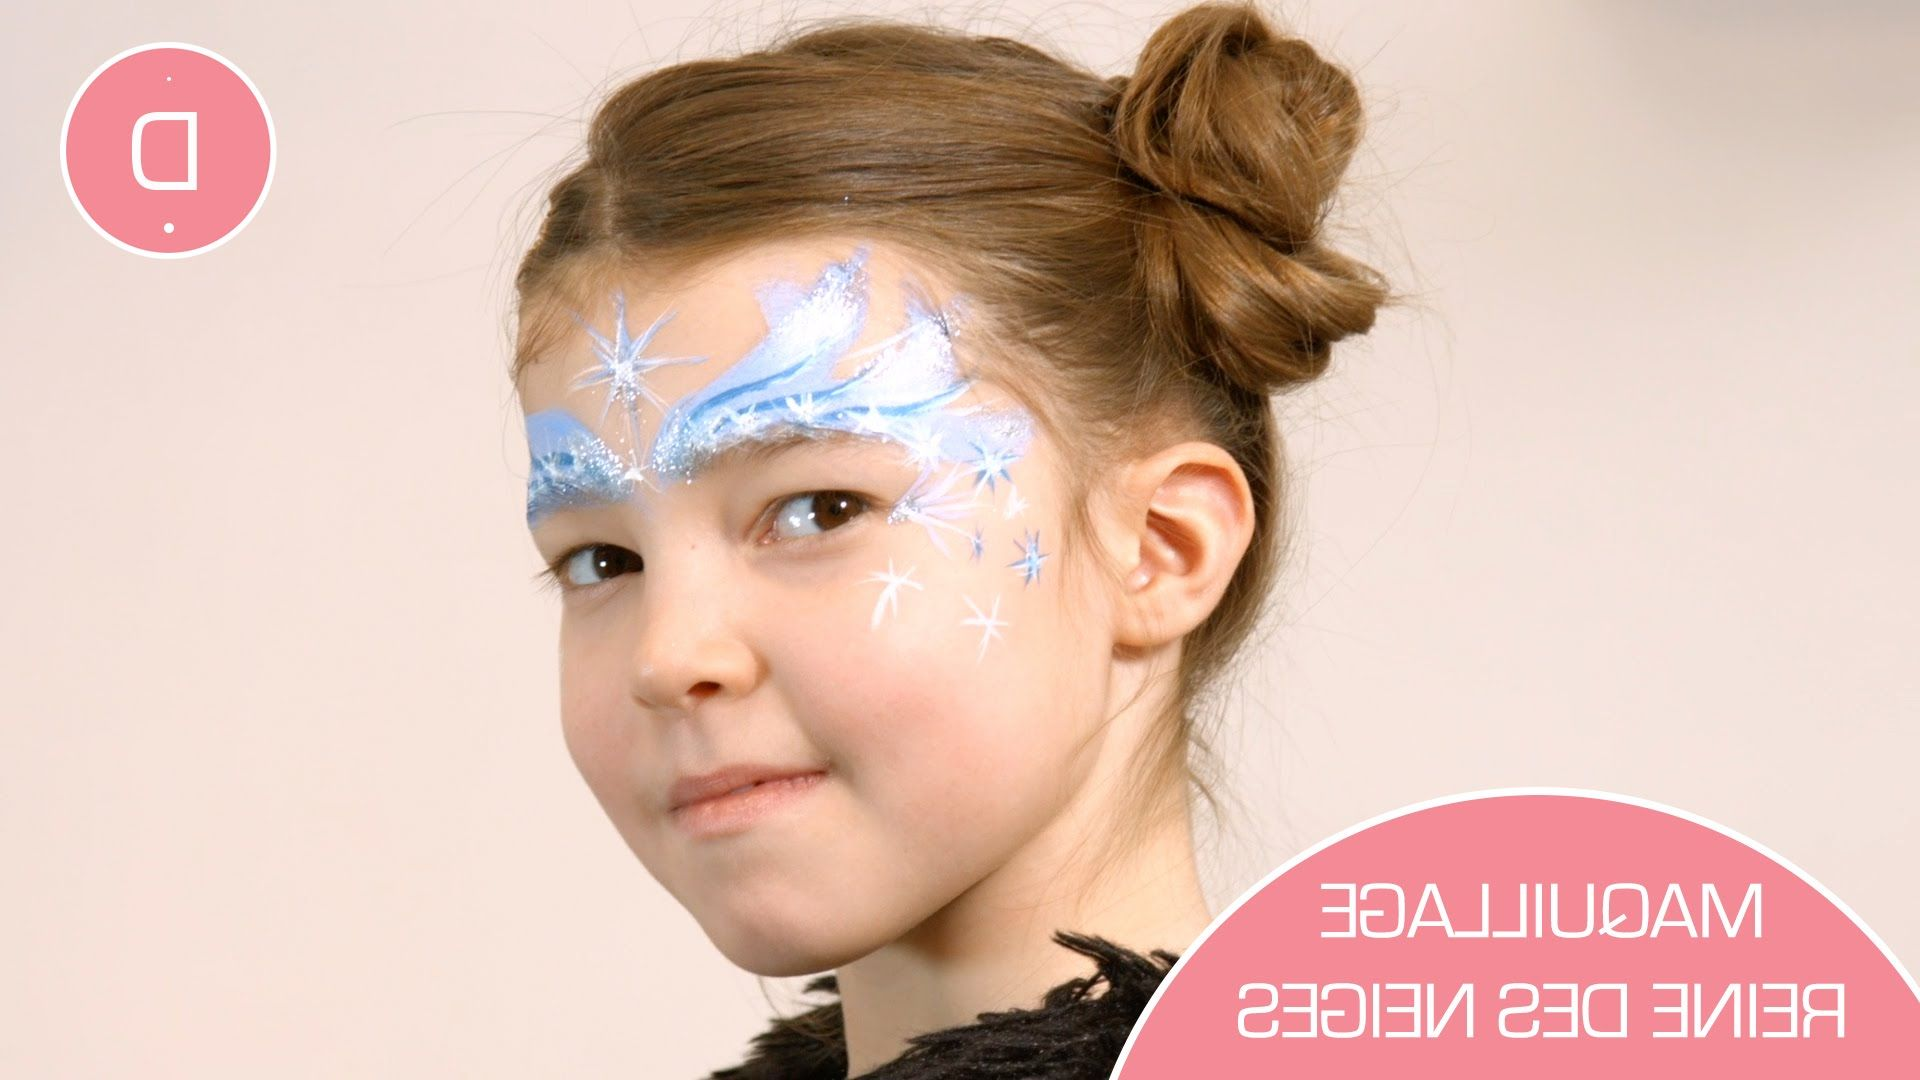 Comparatif maquillage visage enfant